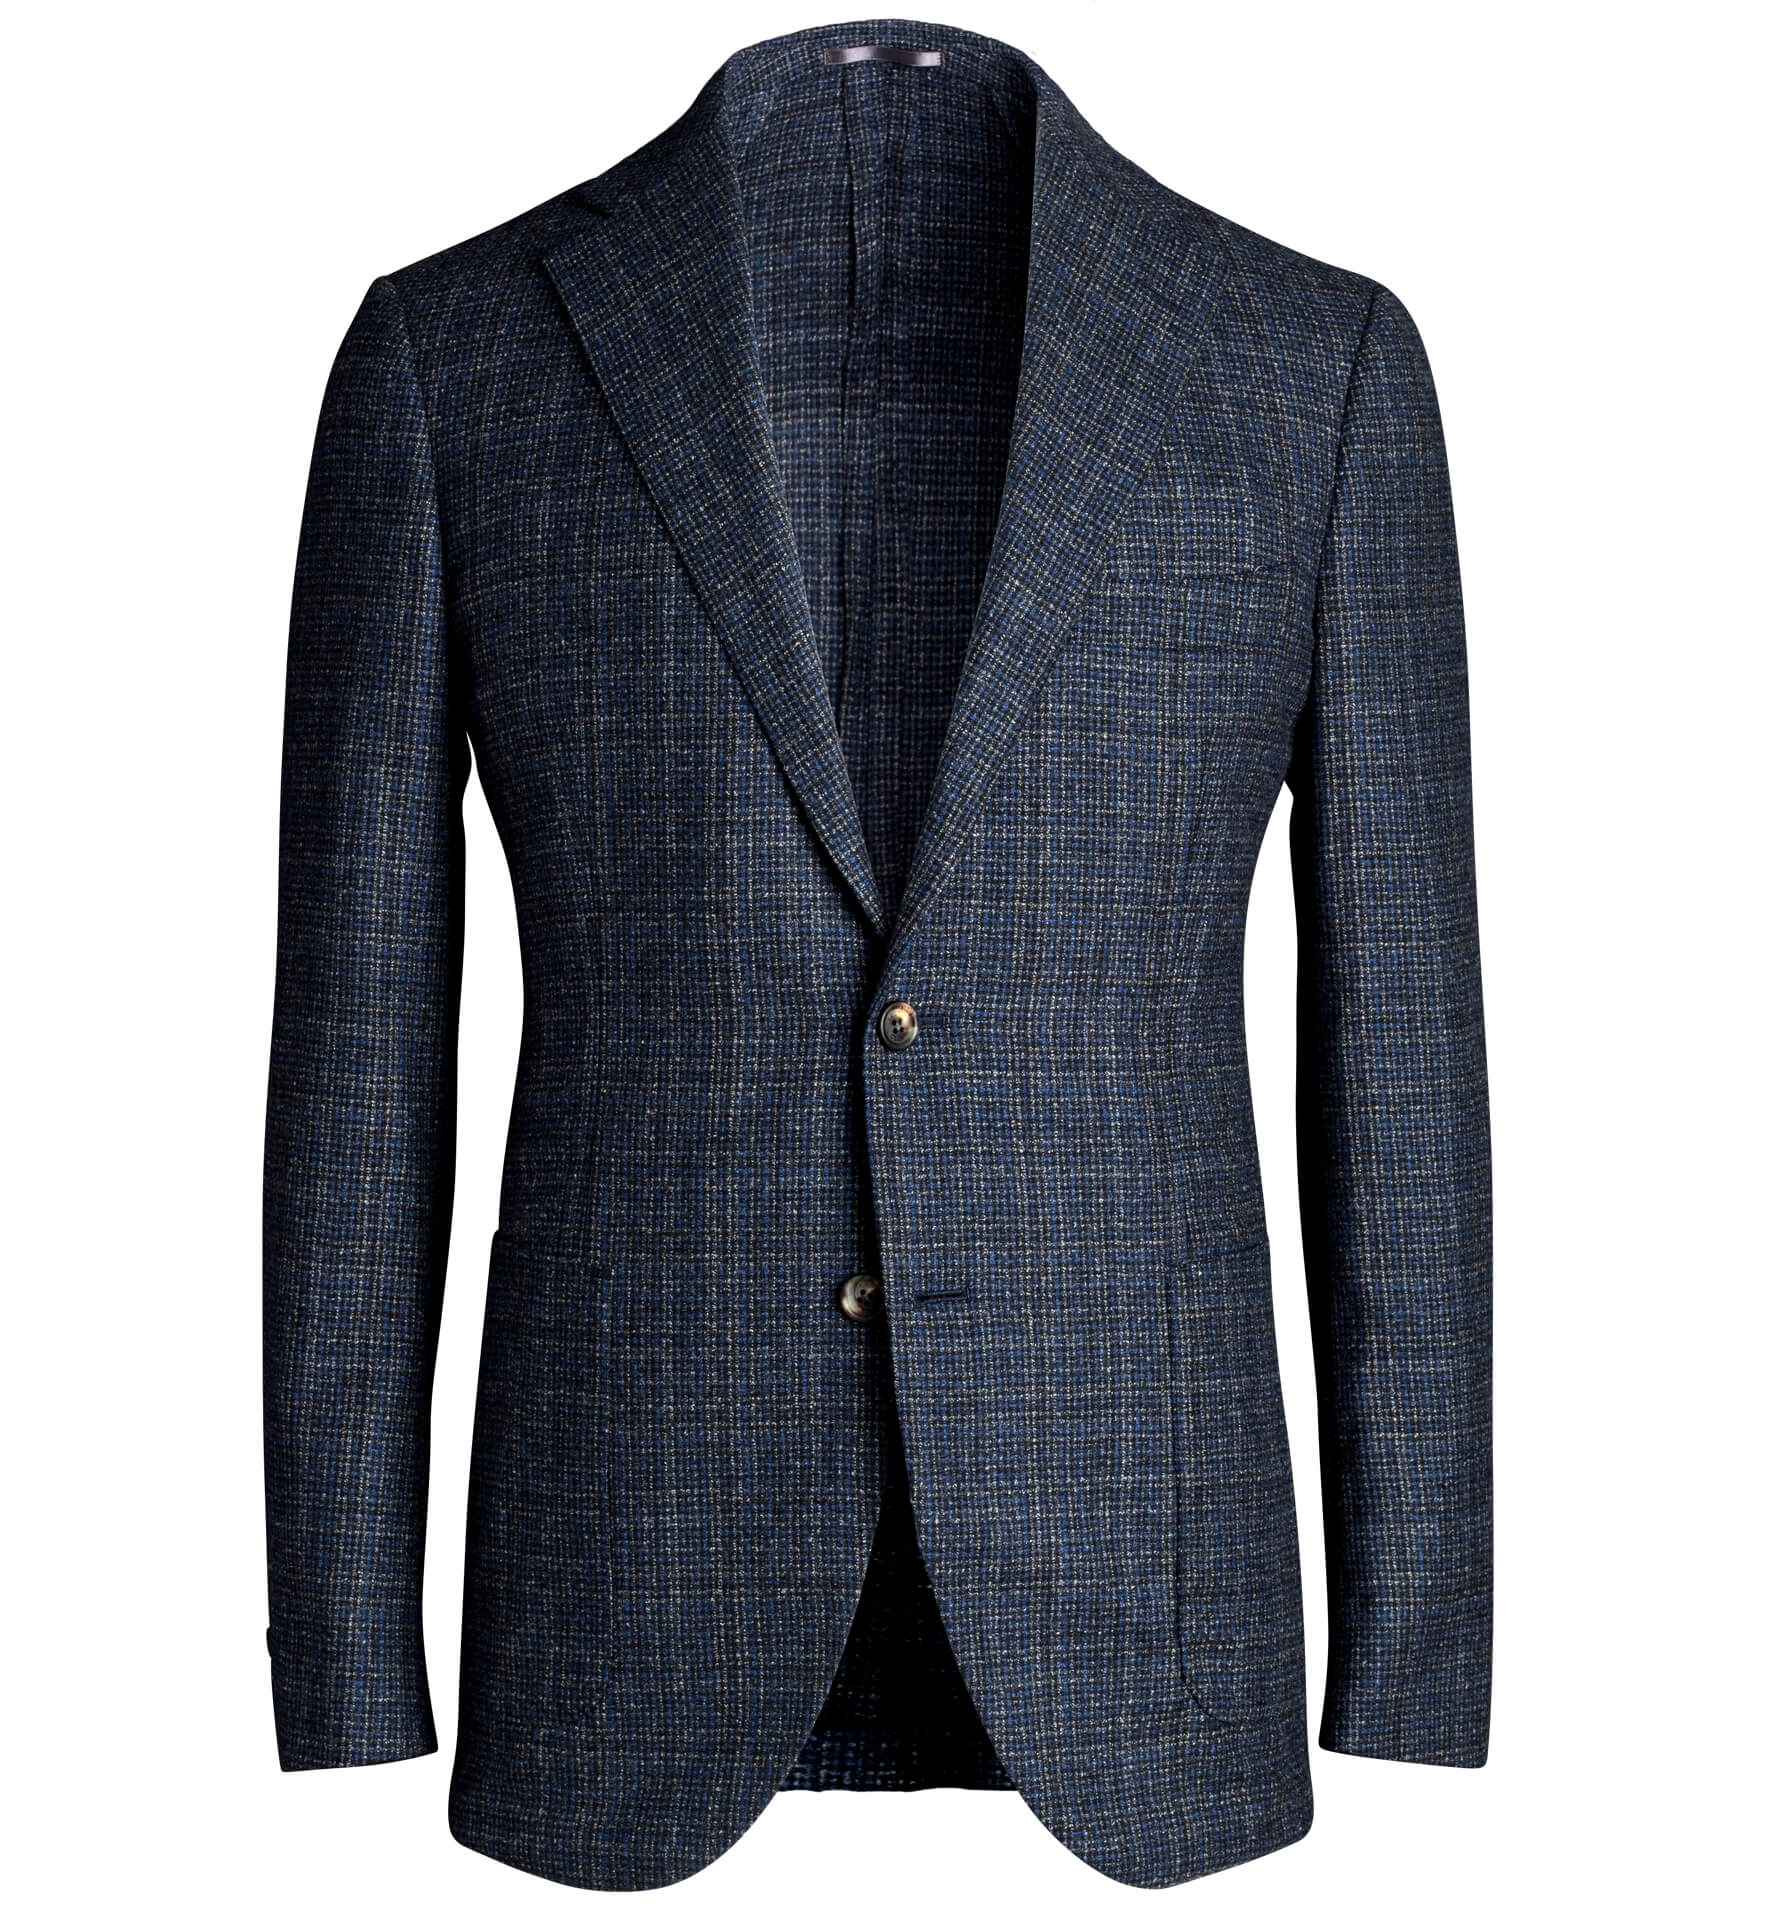 Zoom Image of Bedford Navy and Charcoal Check Wool Jacket